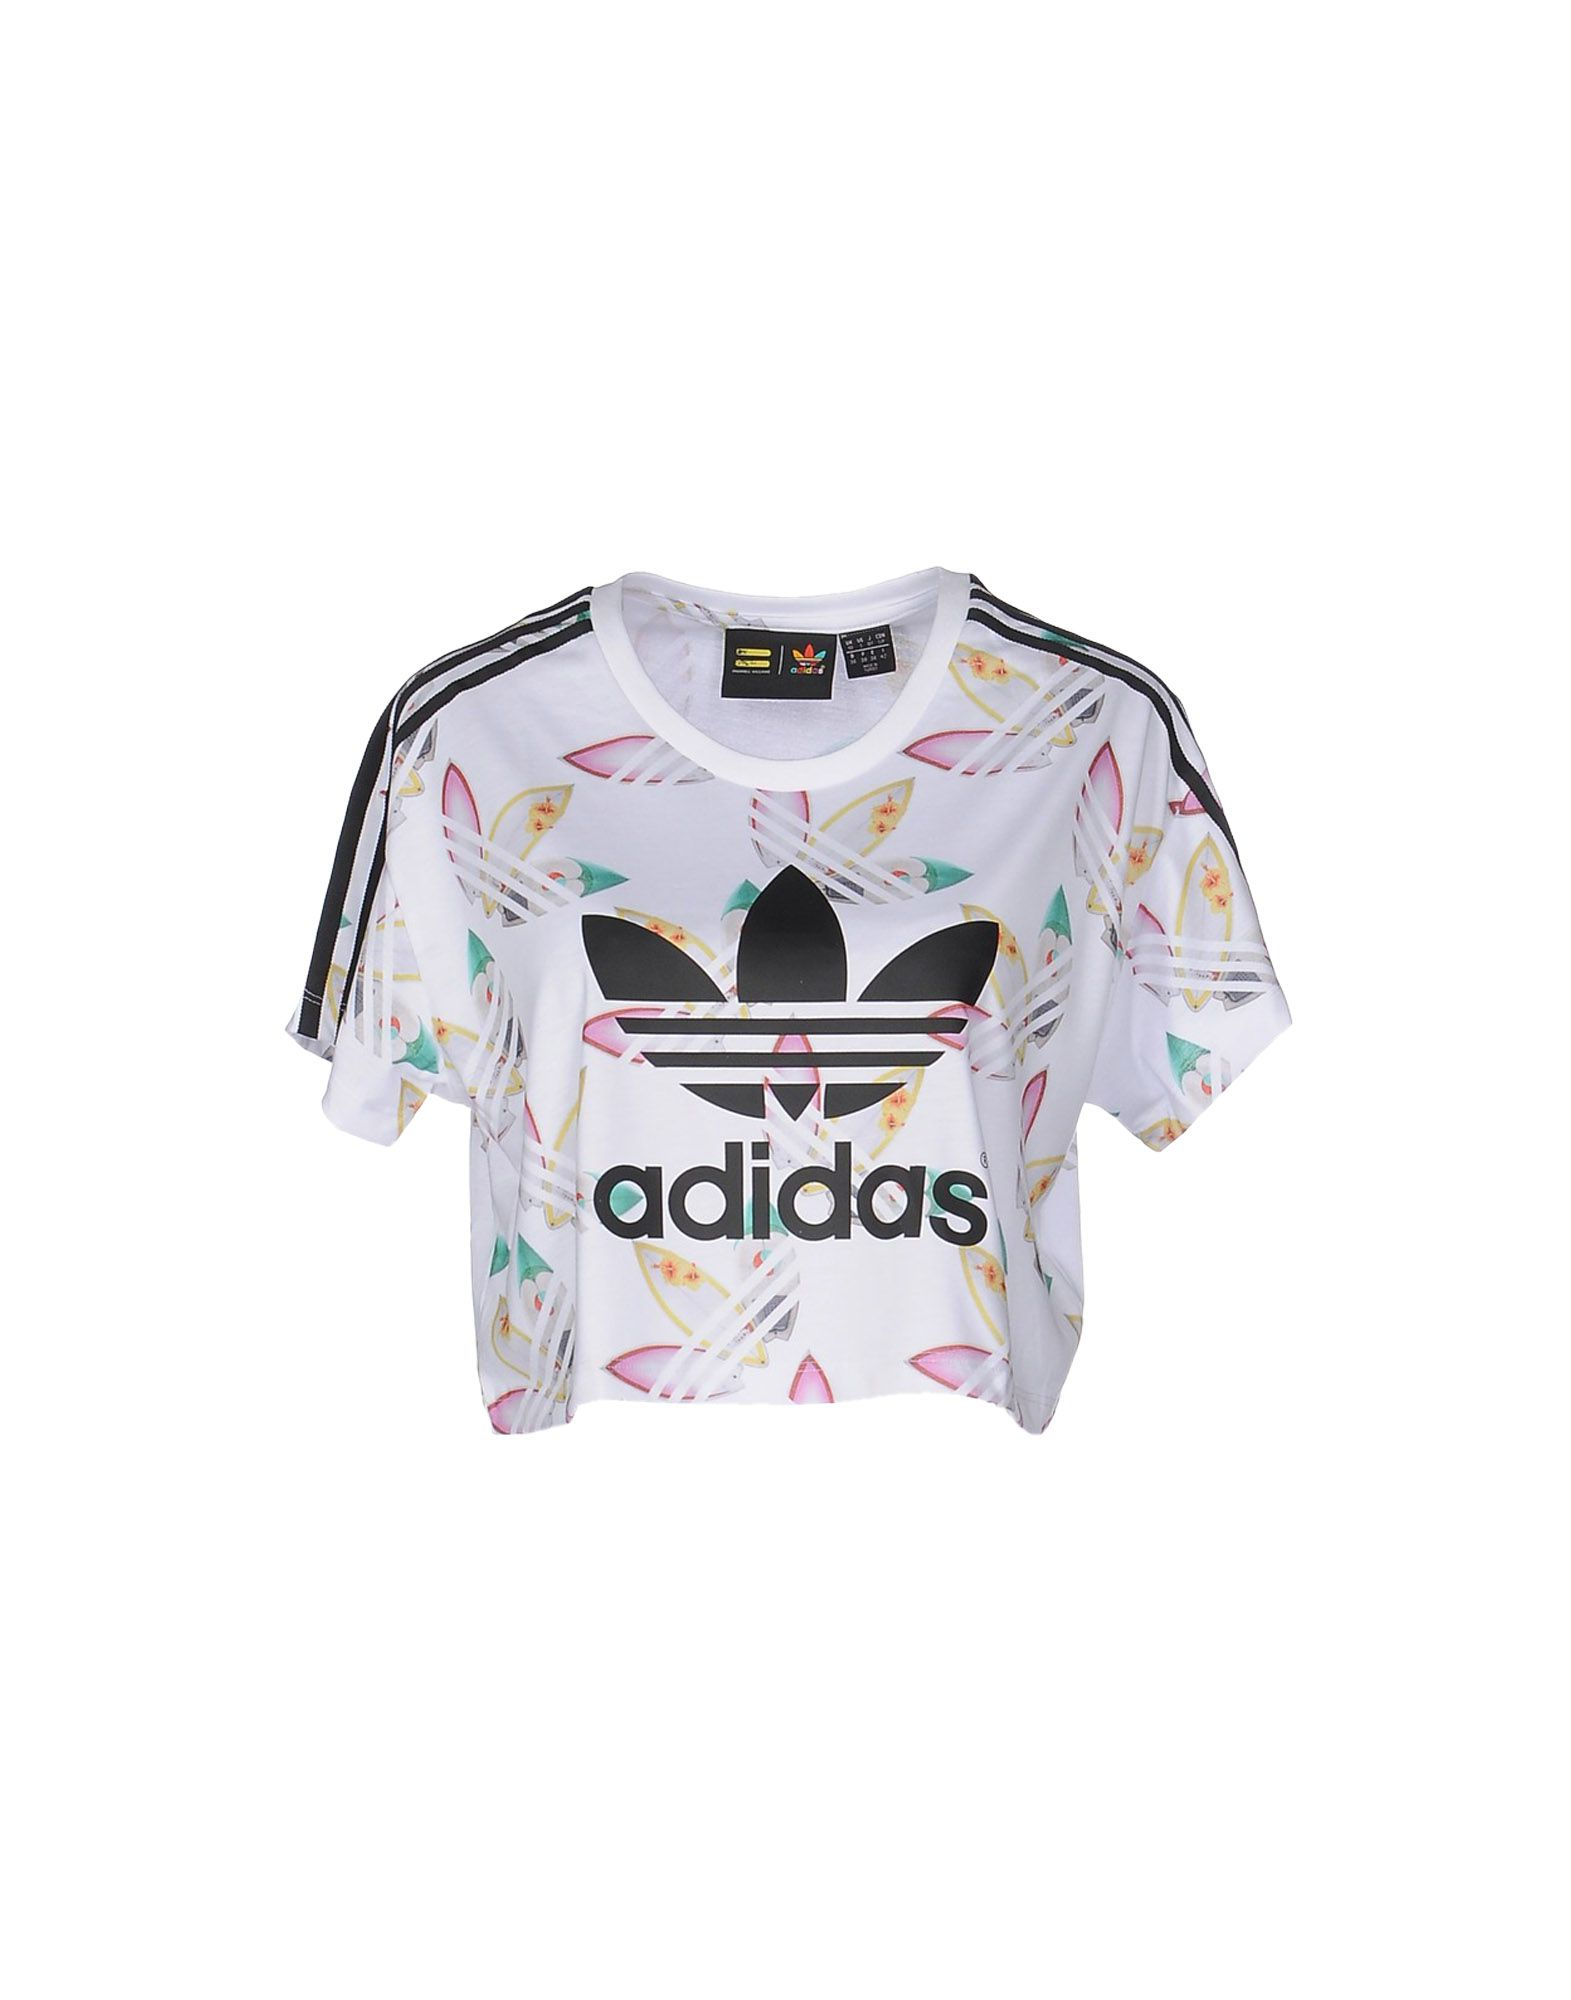 ADIDAS ORIGINALS by PHARRELL WILLIAMS Футболка демисезонные ботинки ma595j4u075 adidas originals pharrell williams